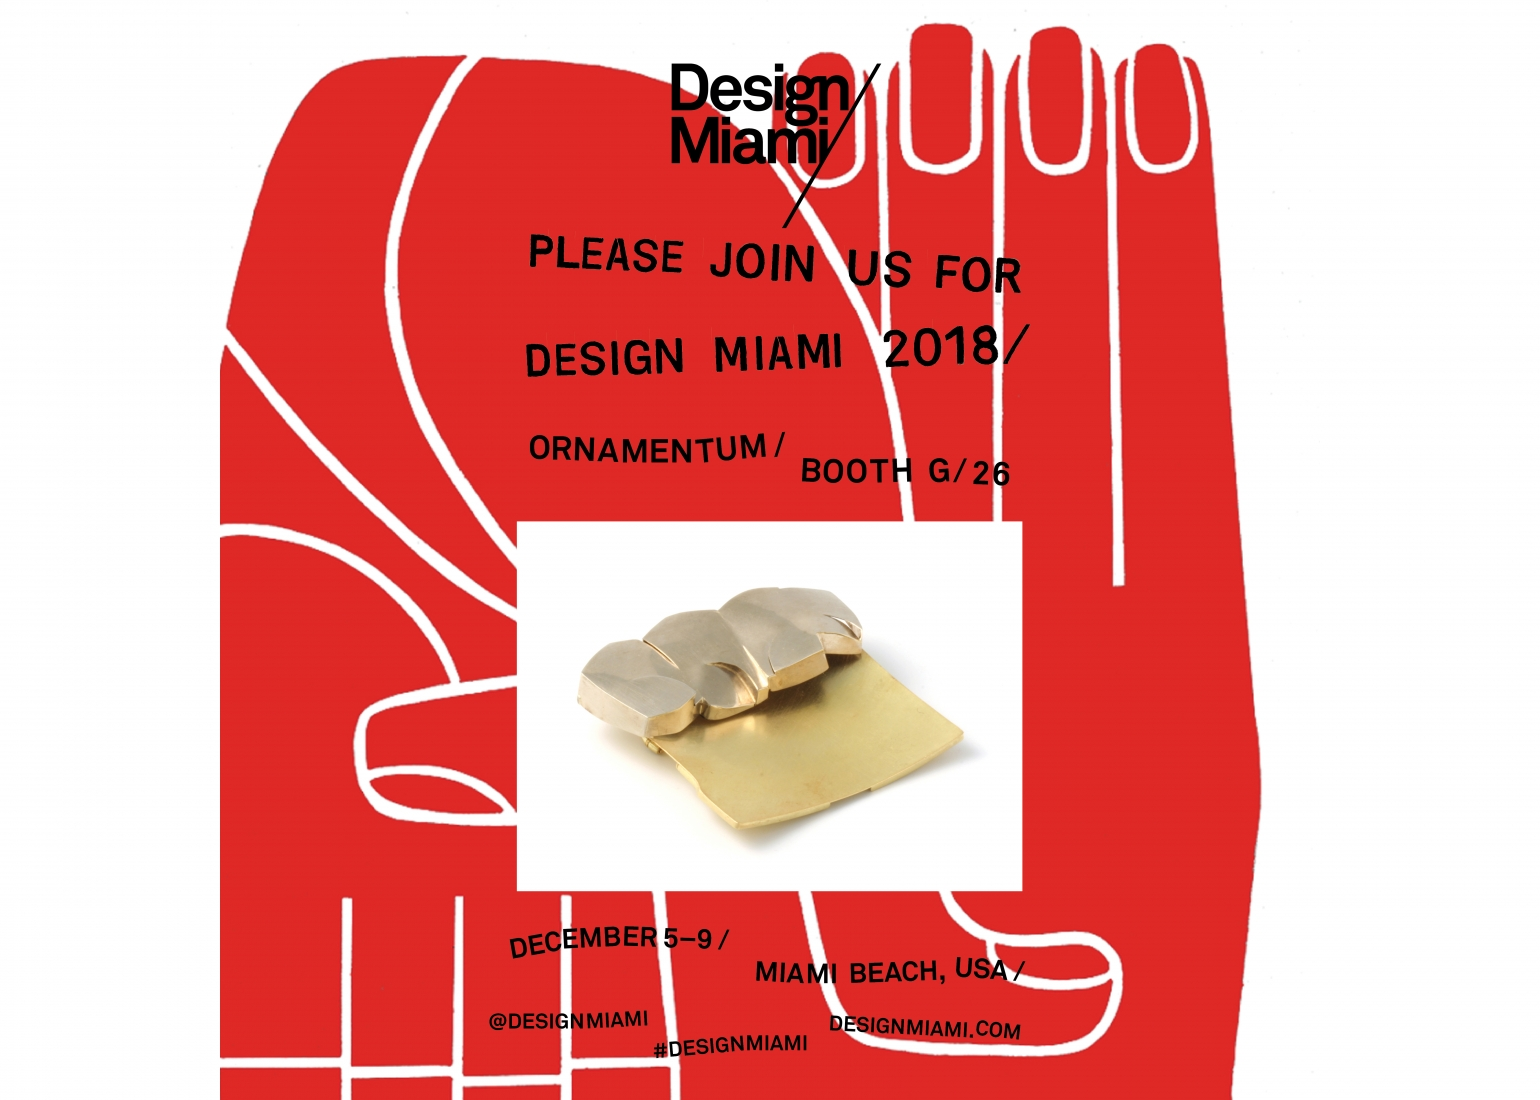 Click image to view selected works exhibited at Design Miami